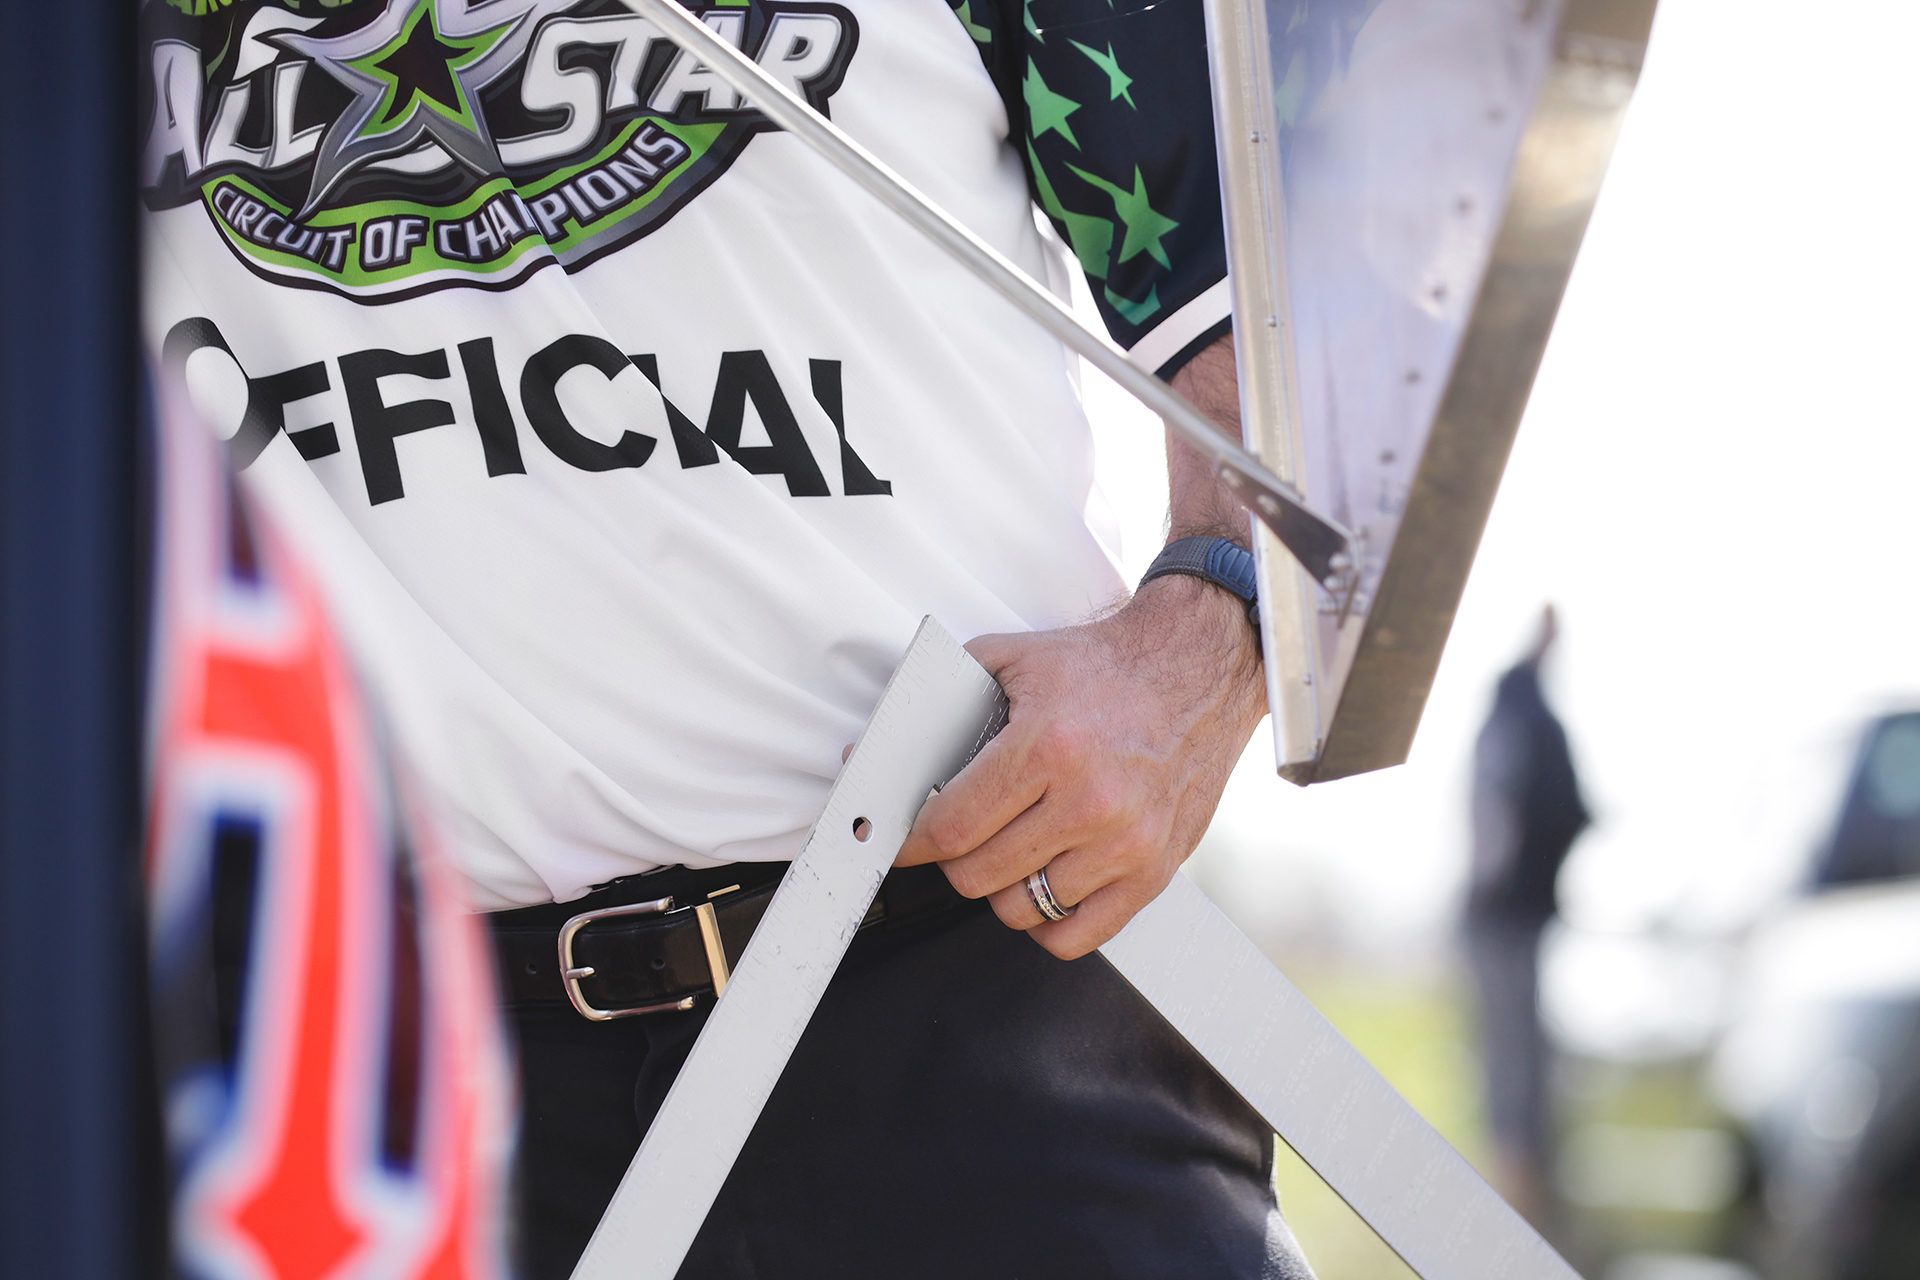 Artic Cat All Star Circuit of Champions official checks the compliance at Selinsgrove Speedway. ( Jeffrey Turford / TDP )